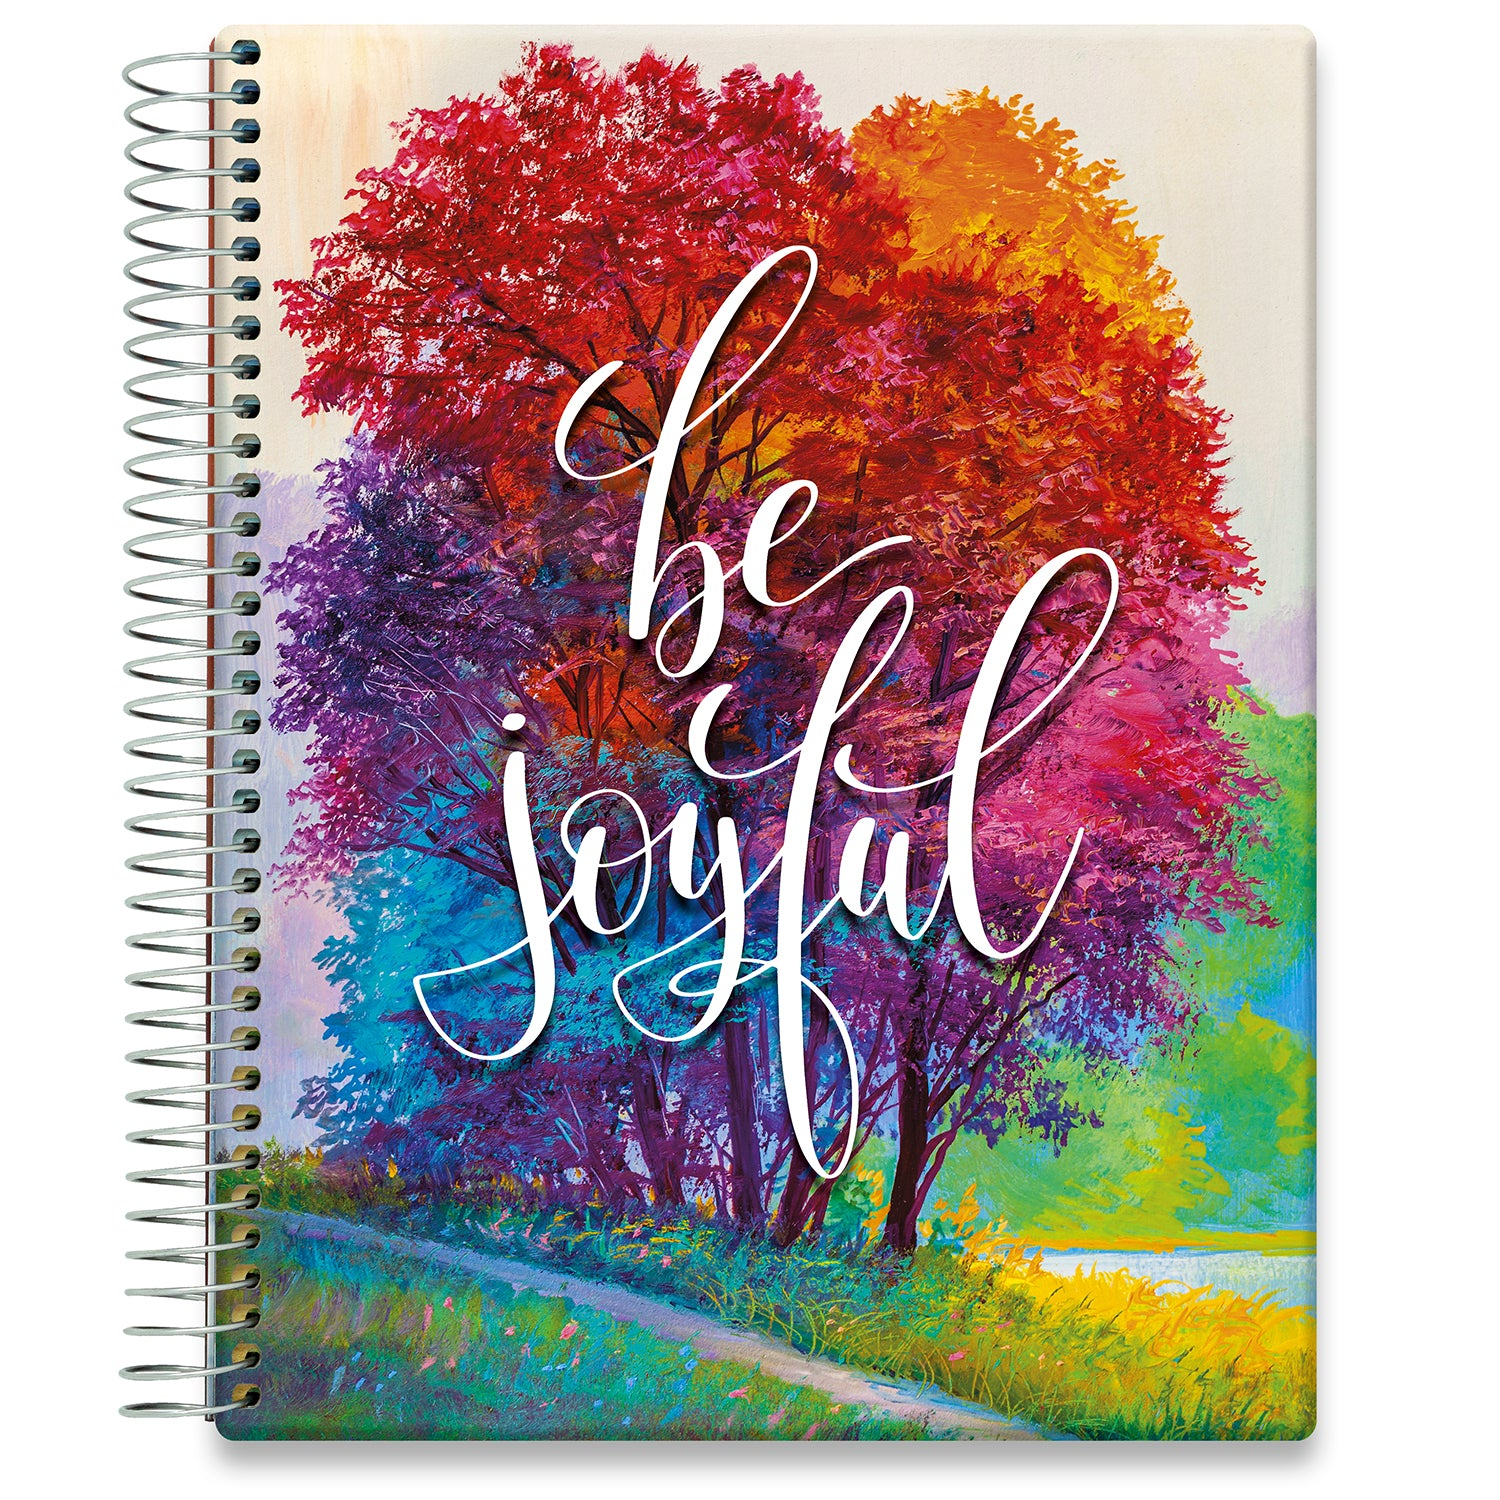 Planner 2021-2022 • April 2021 to June 2022 Academic Year • 8.5x11 Hardcover • Be Joyful Cover